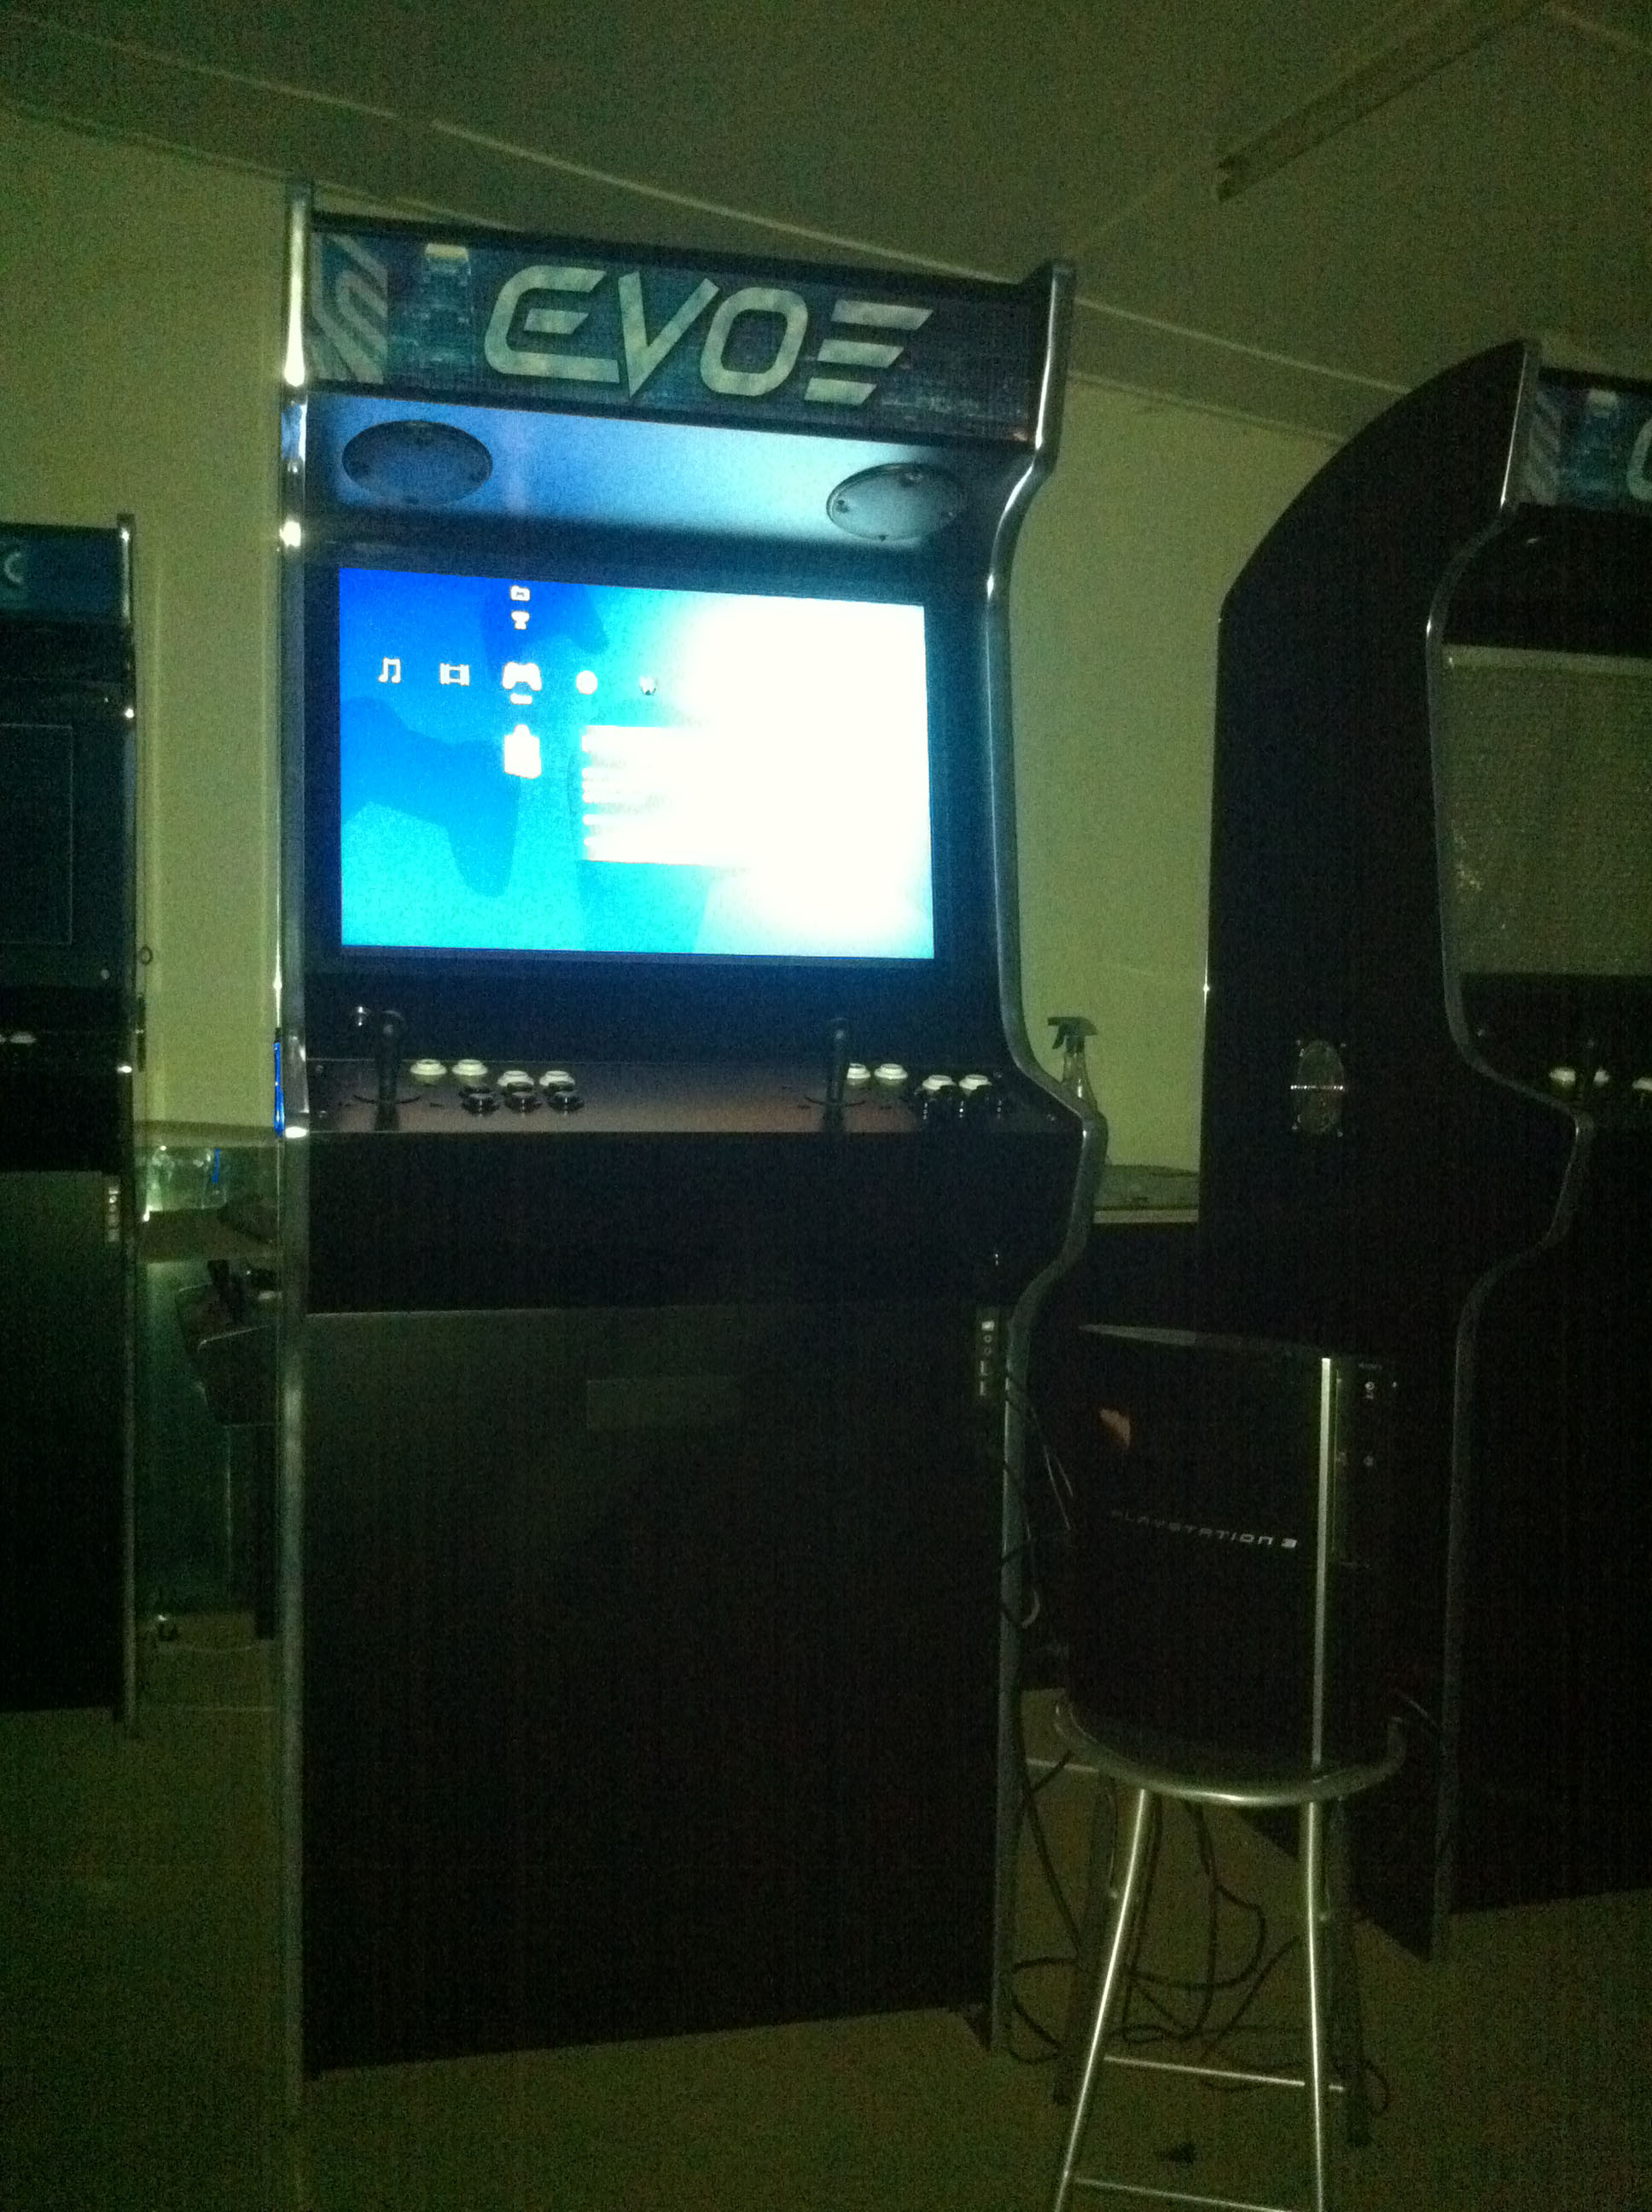 PS3 Compatible Arcade Machine in Action - Bespoke Arcades